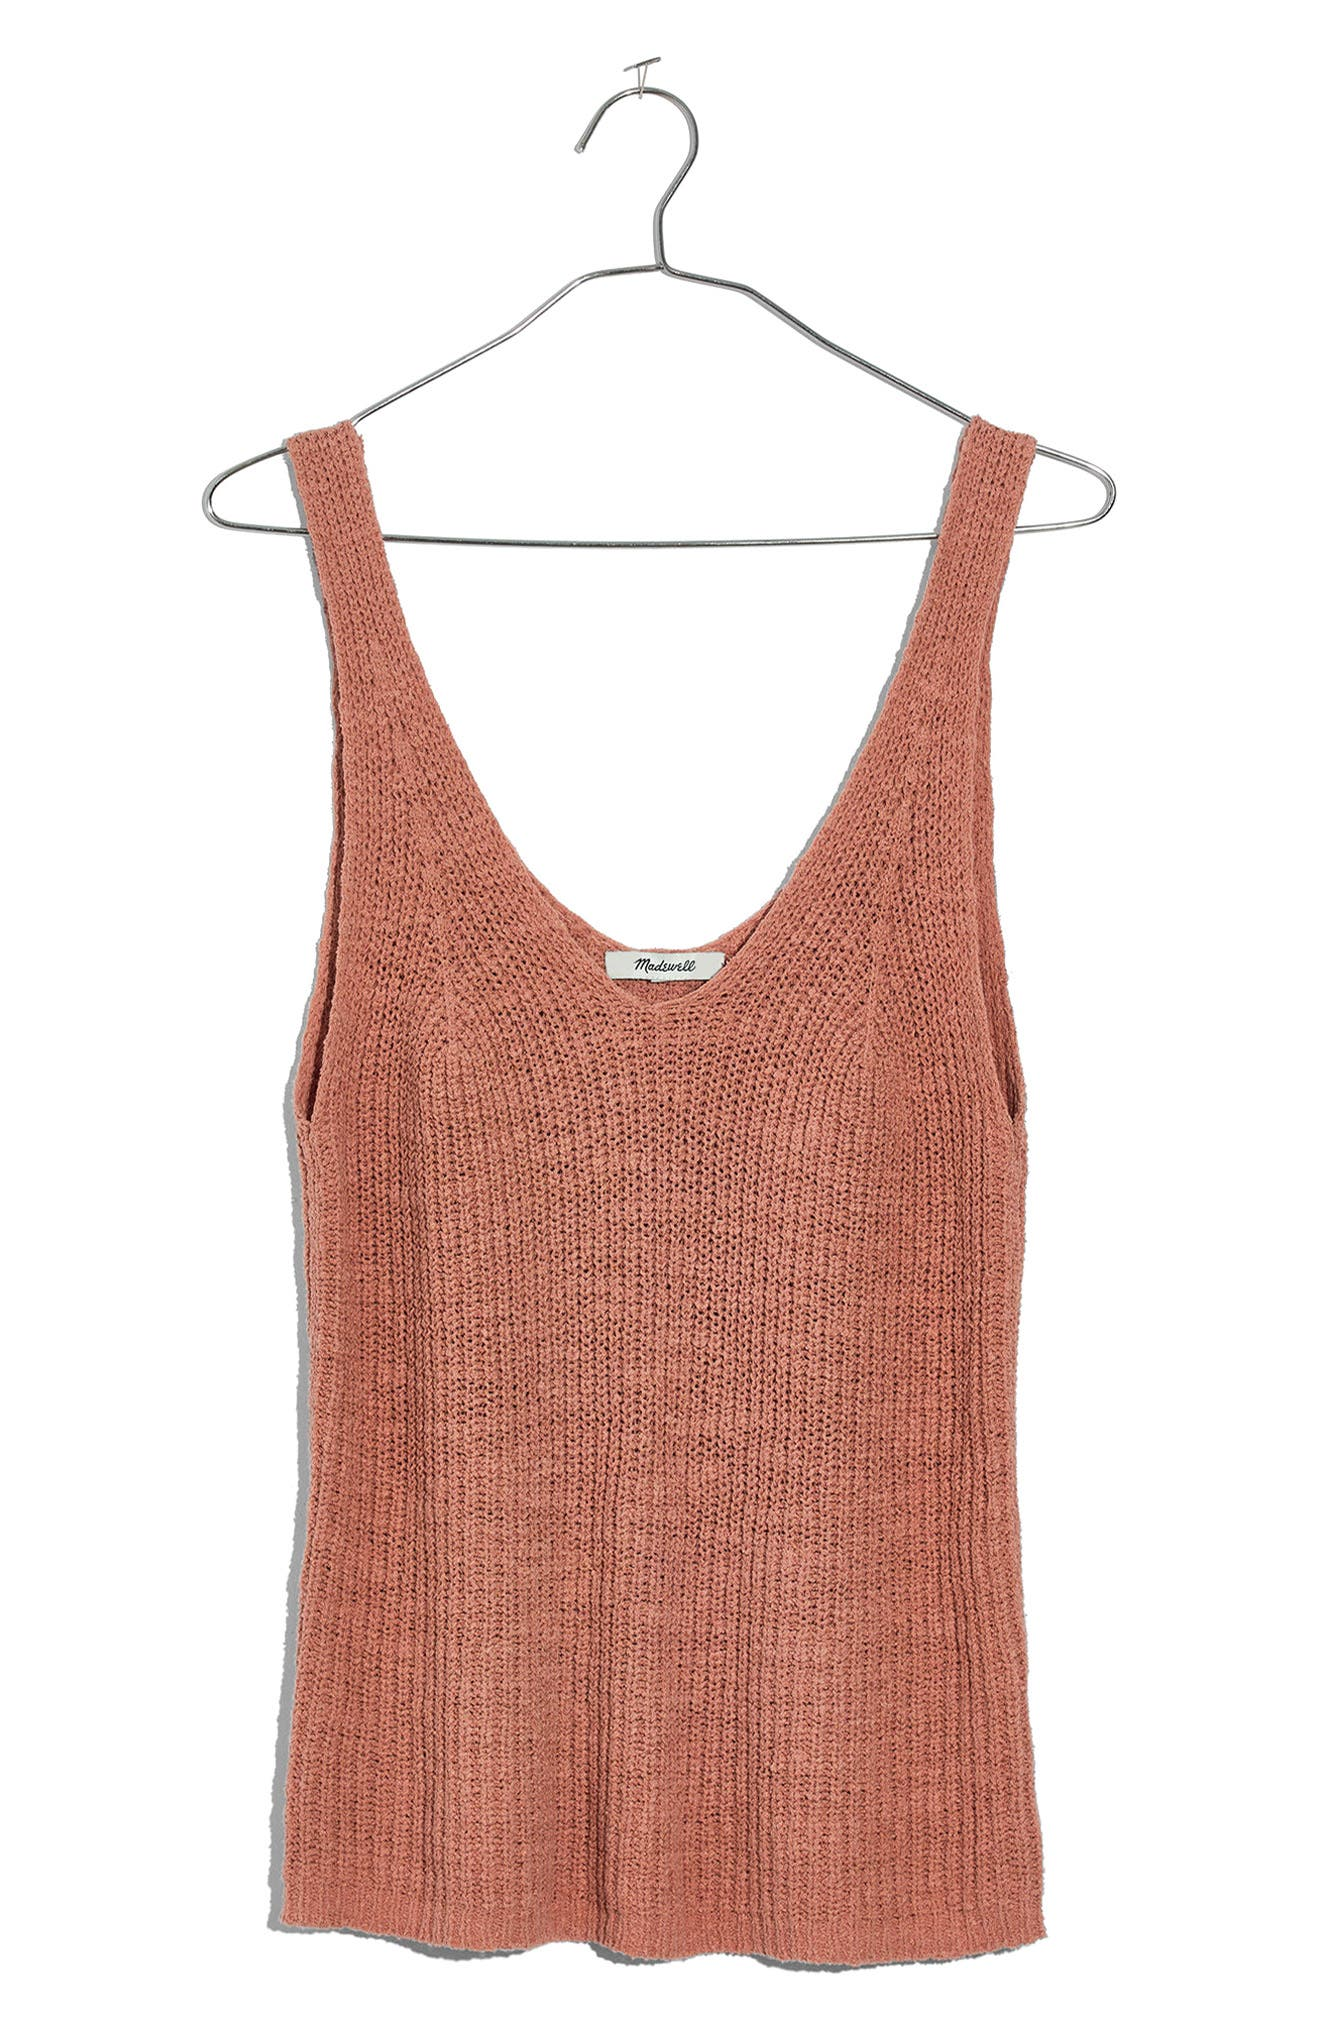 Monterey Sweater Tank,                             Main thumbnail 1, color,                             Antique Coral